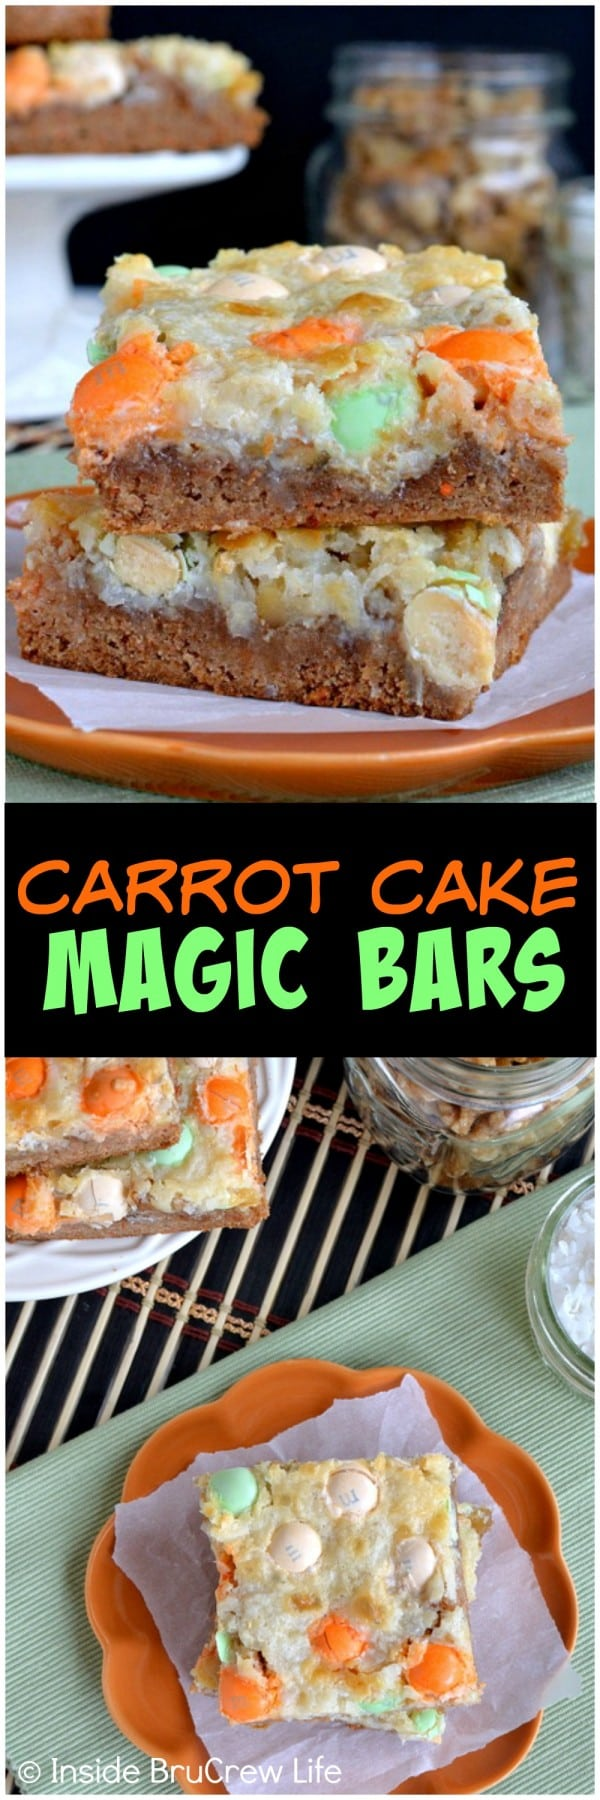 Carrot Cake Magic Bars - these fun gooey bars are loaded with pineapple, nuts, and candy. Great Easter dessert recipe.